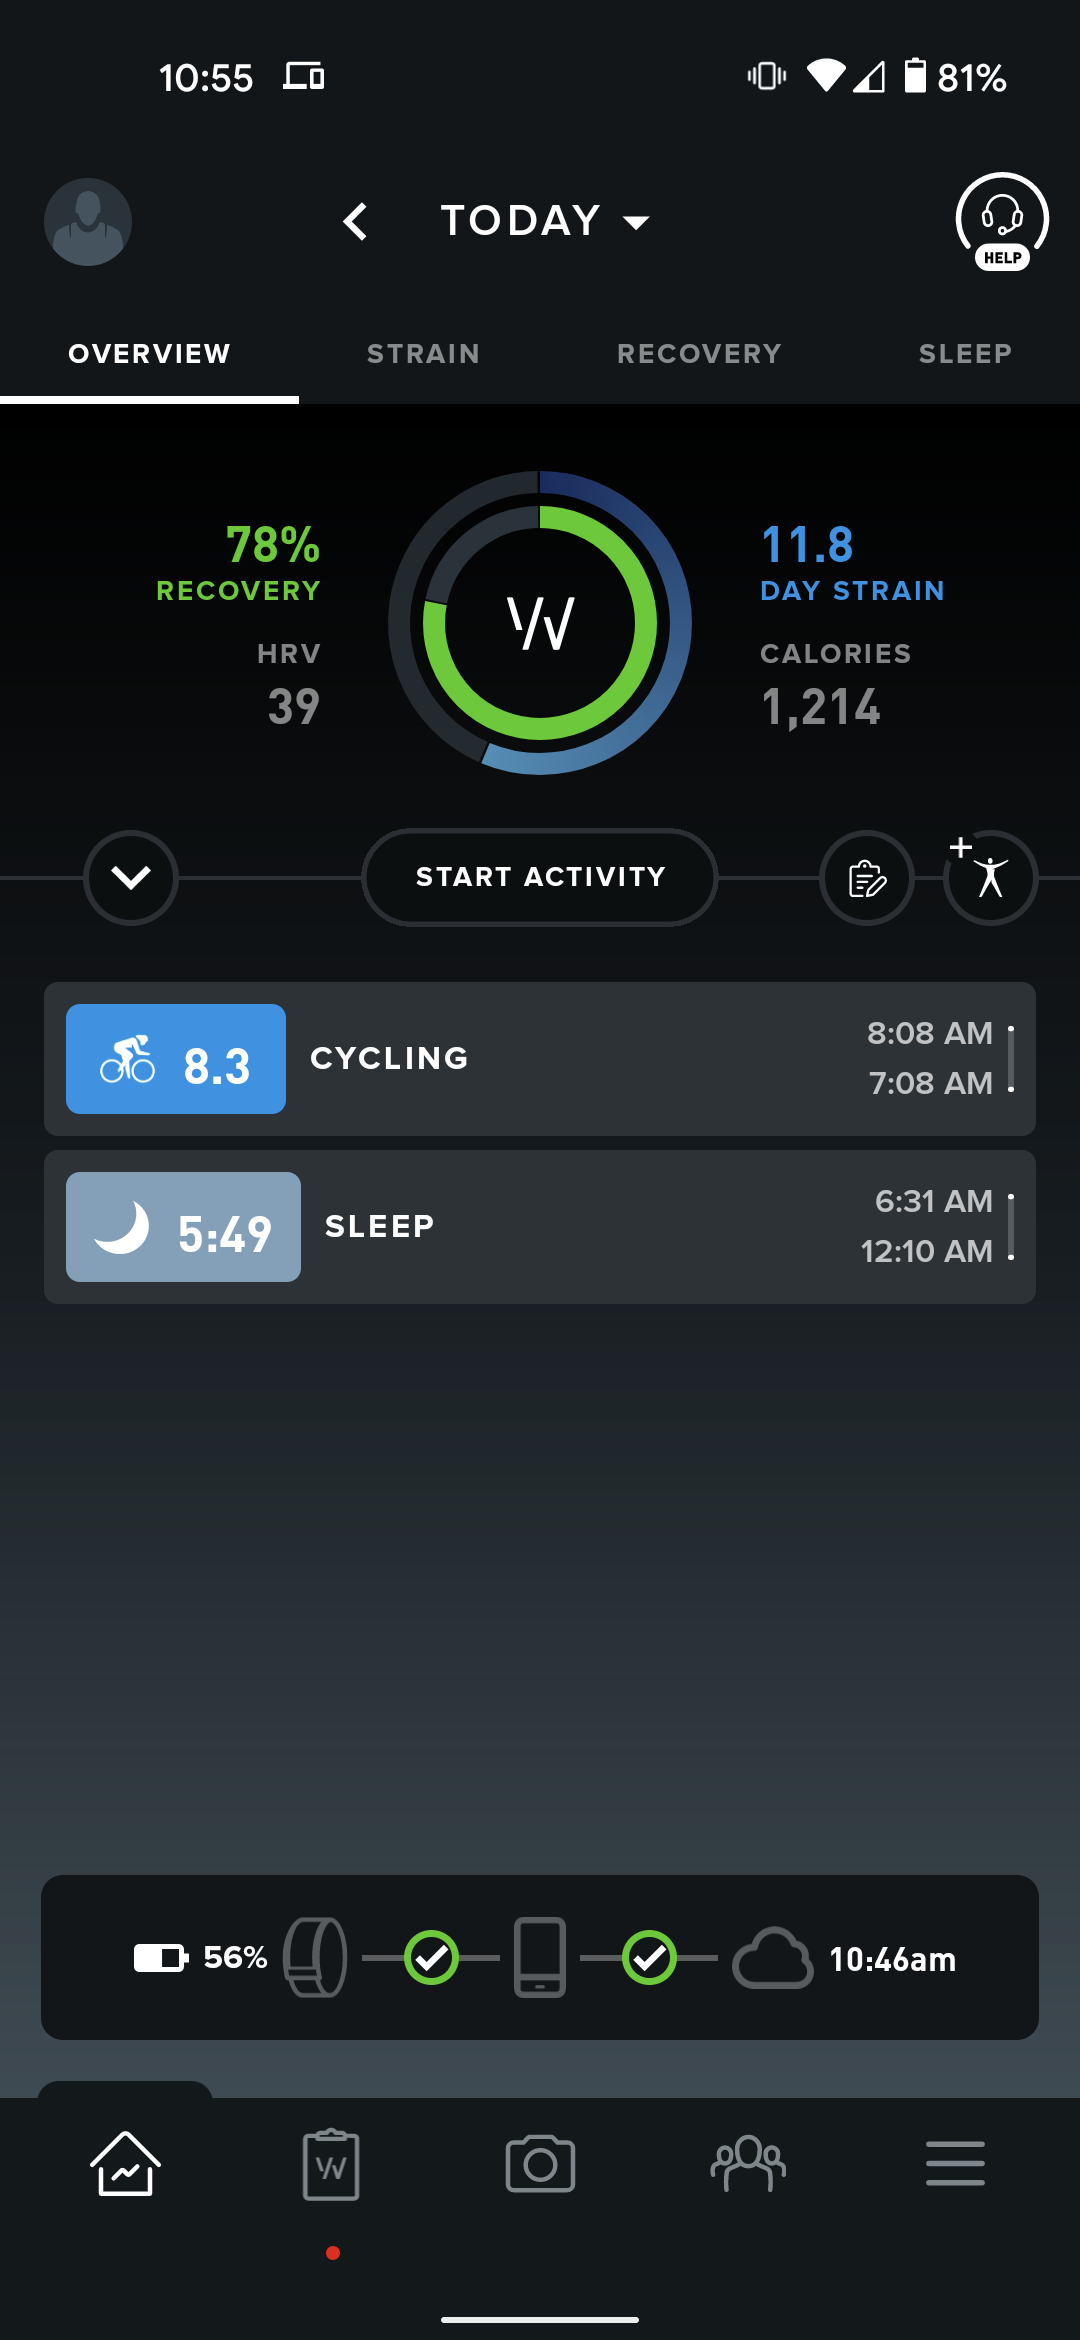 Whoop's main screen, showing a workout, day strain, and sleep